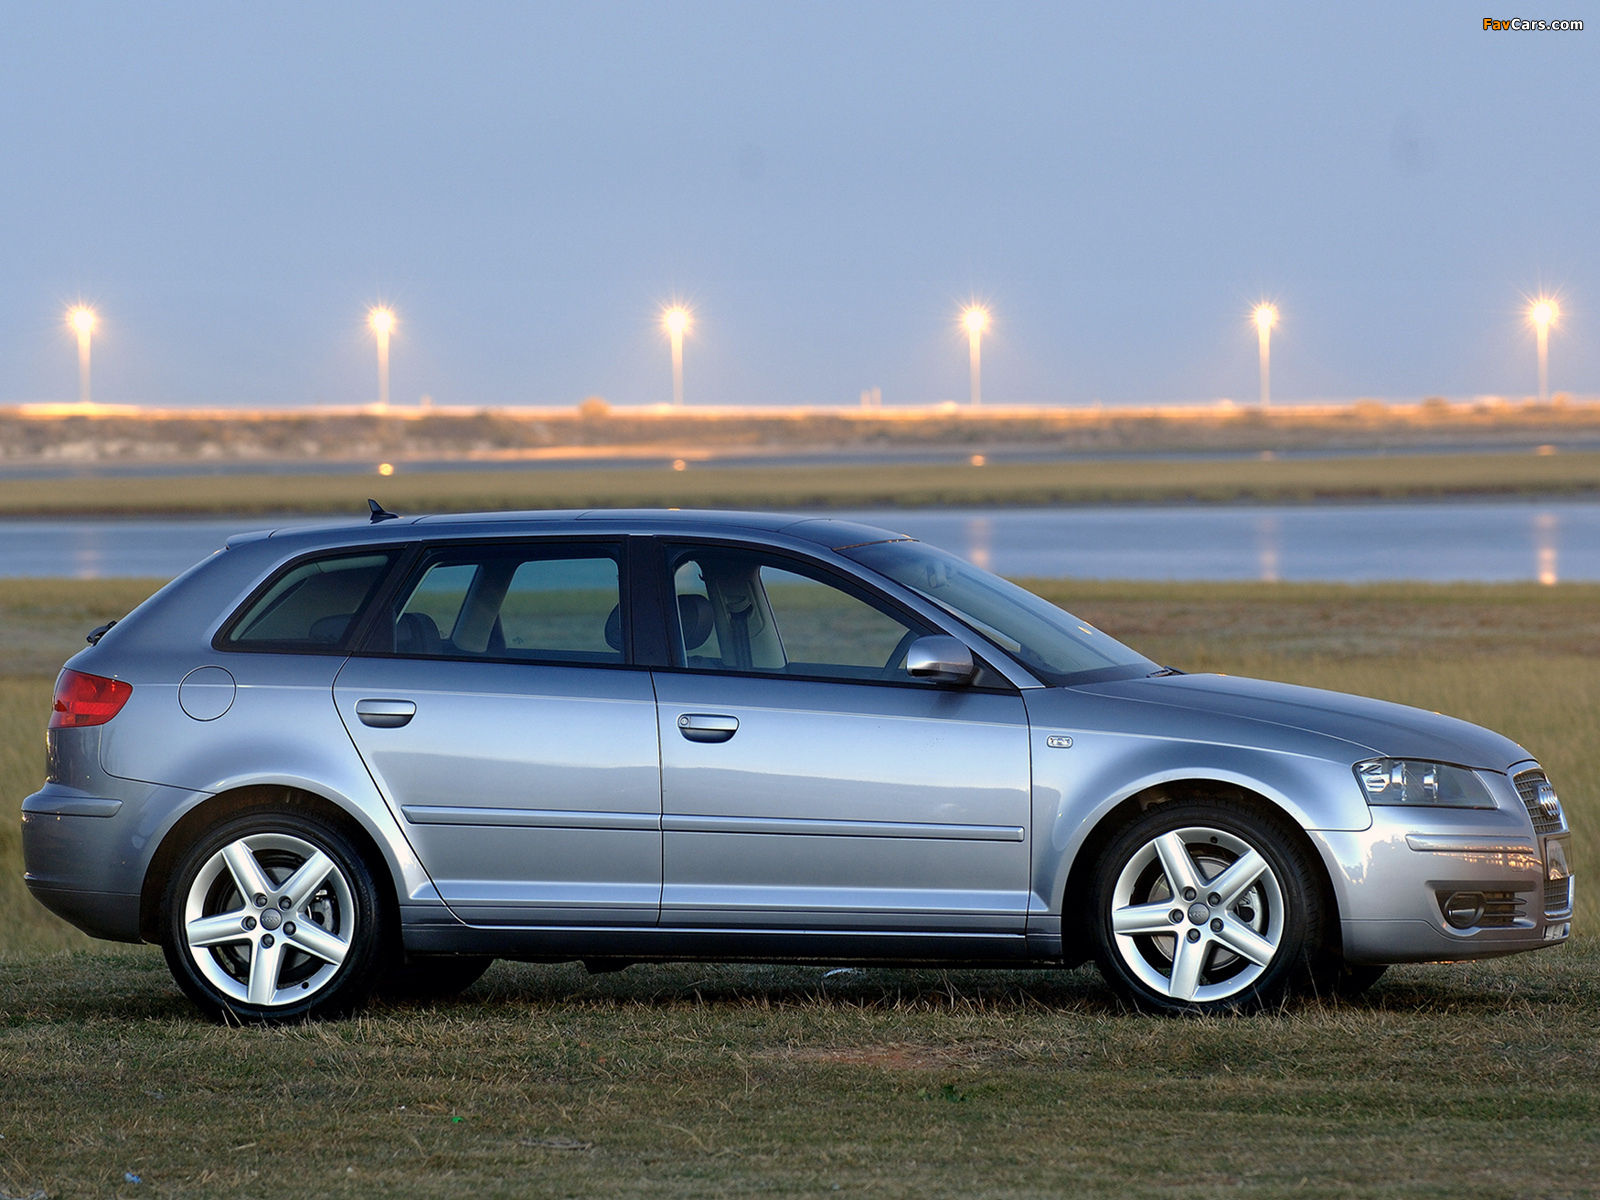 Wallpapers of audi a3 sportback 2 0t za spec 8pa 2005 for Dimensioni audi a3 sportback 2008